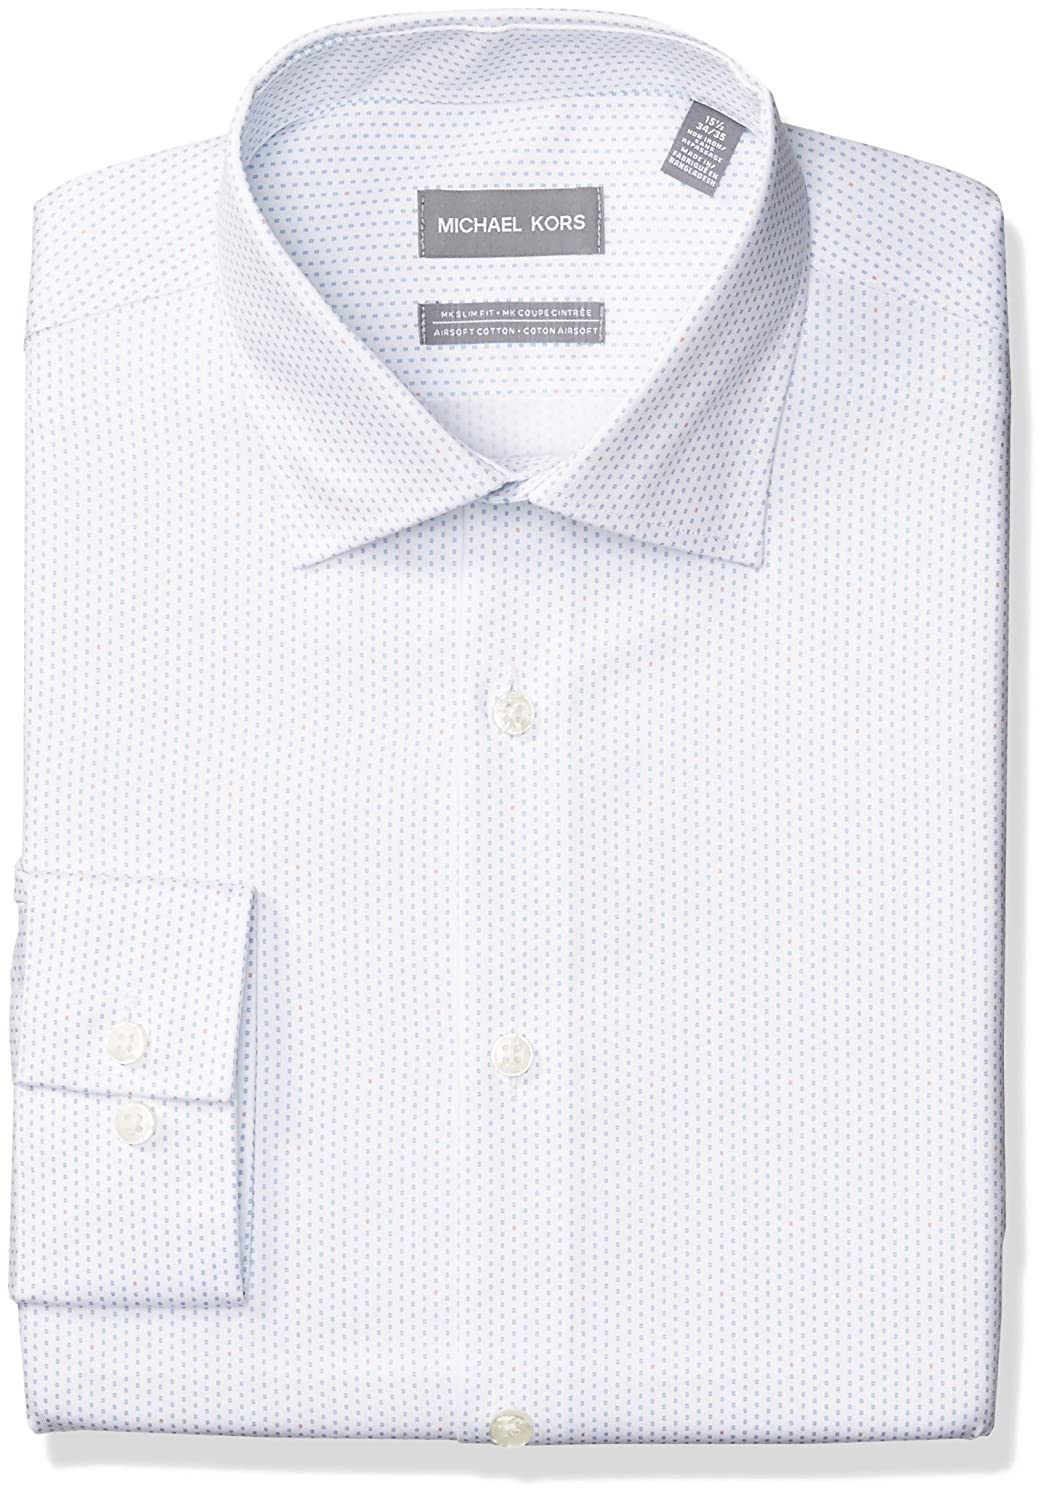 Michael Kors Mens Standard Non Iron Slim Fit Amazon Clothing